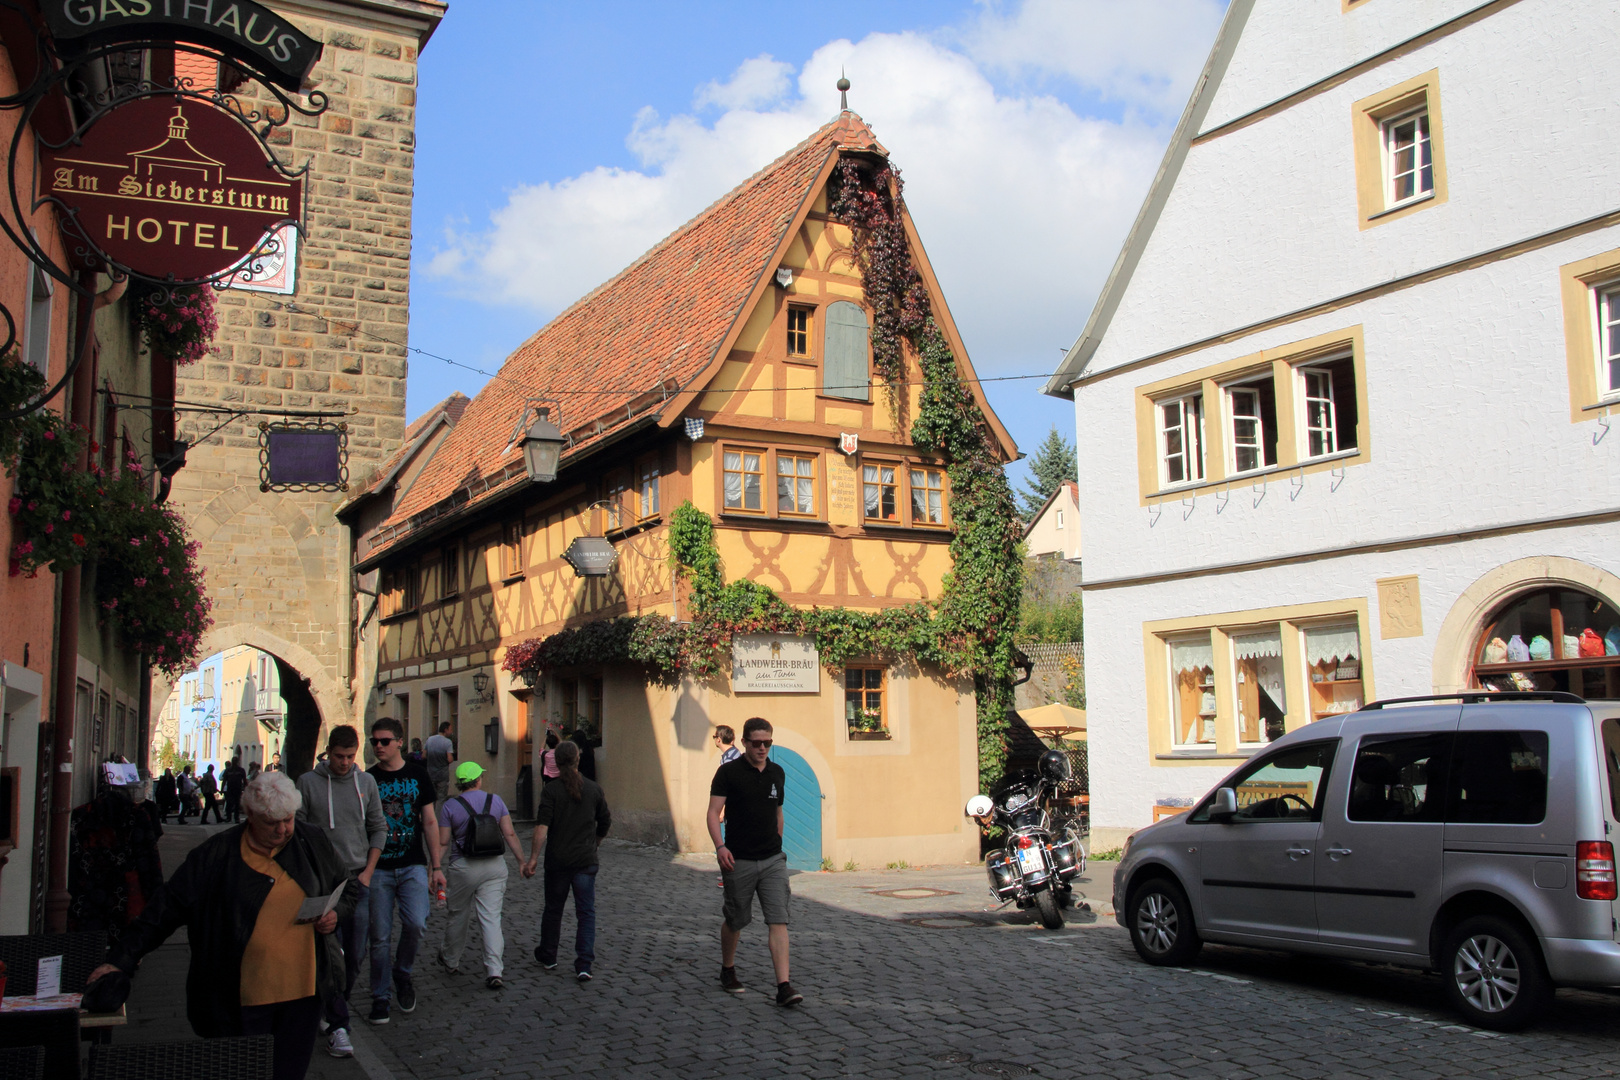 Landwehrbräu am Sieberstor in Rothenburg ob der Tauber